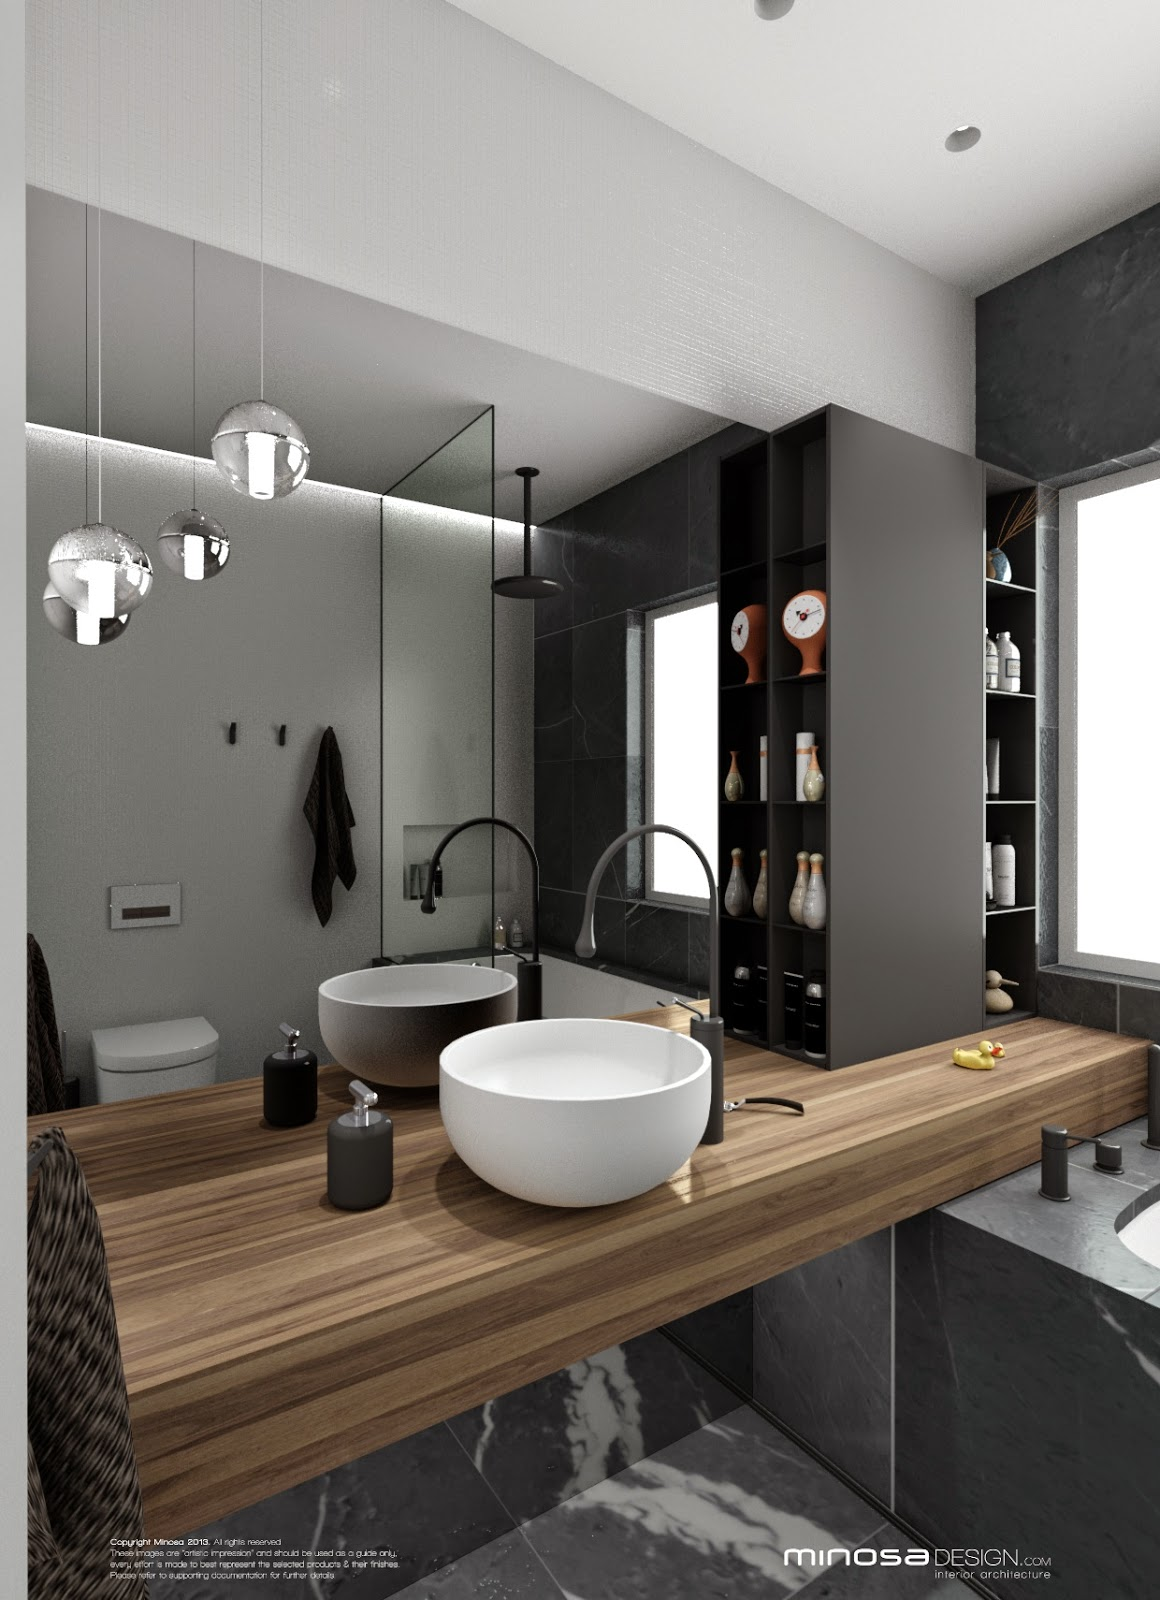 Minosa bathroom design small space feels large for Small bath design gallery